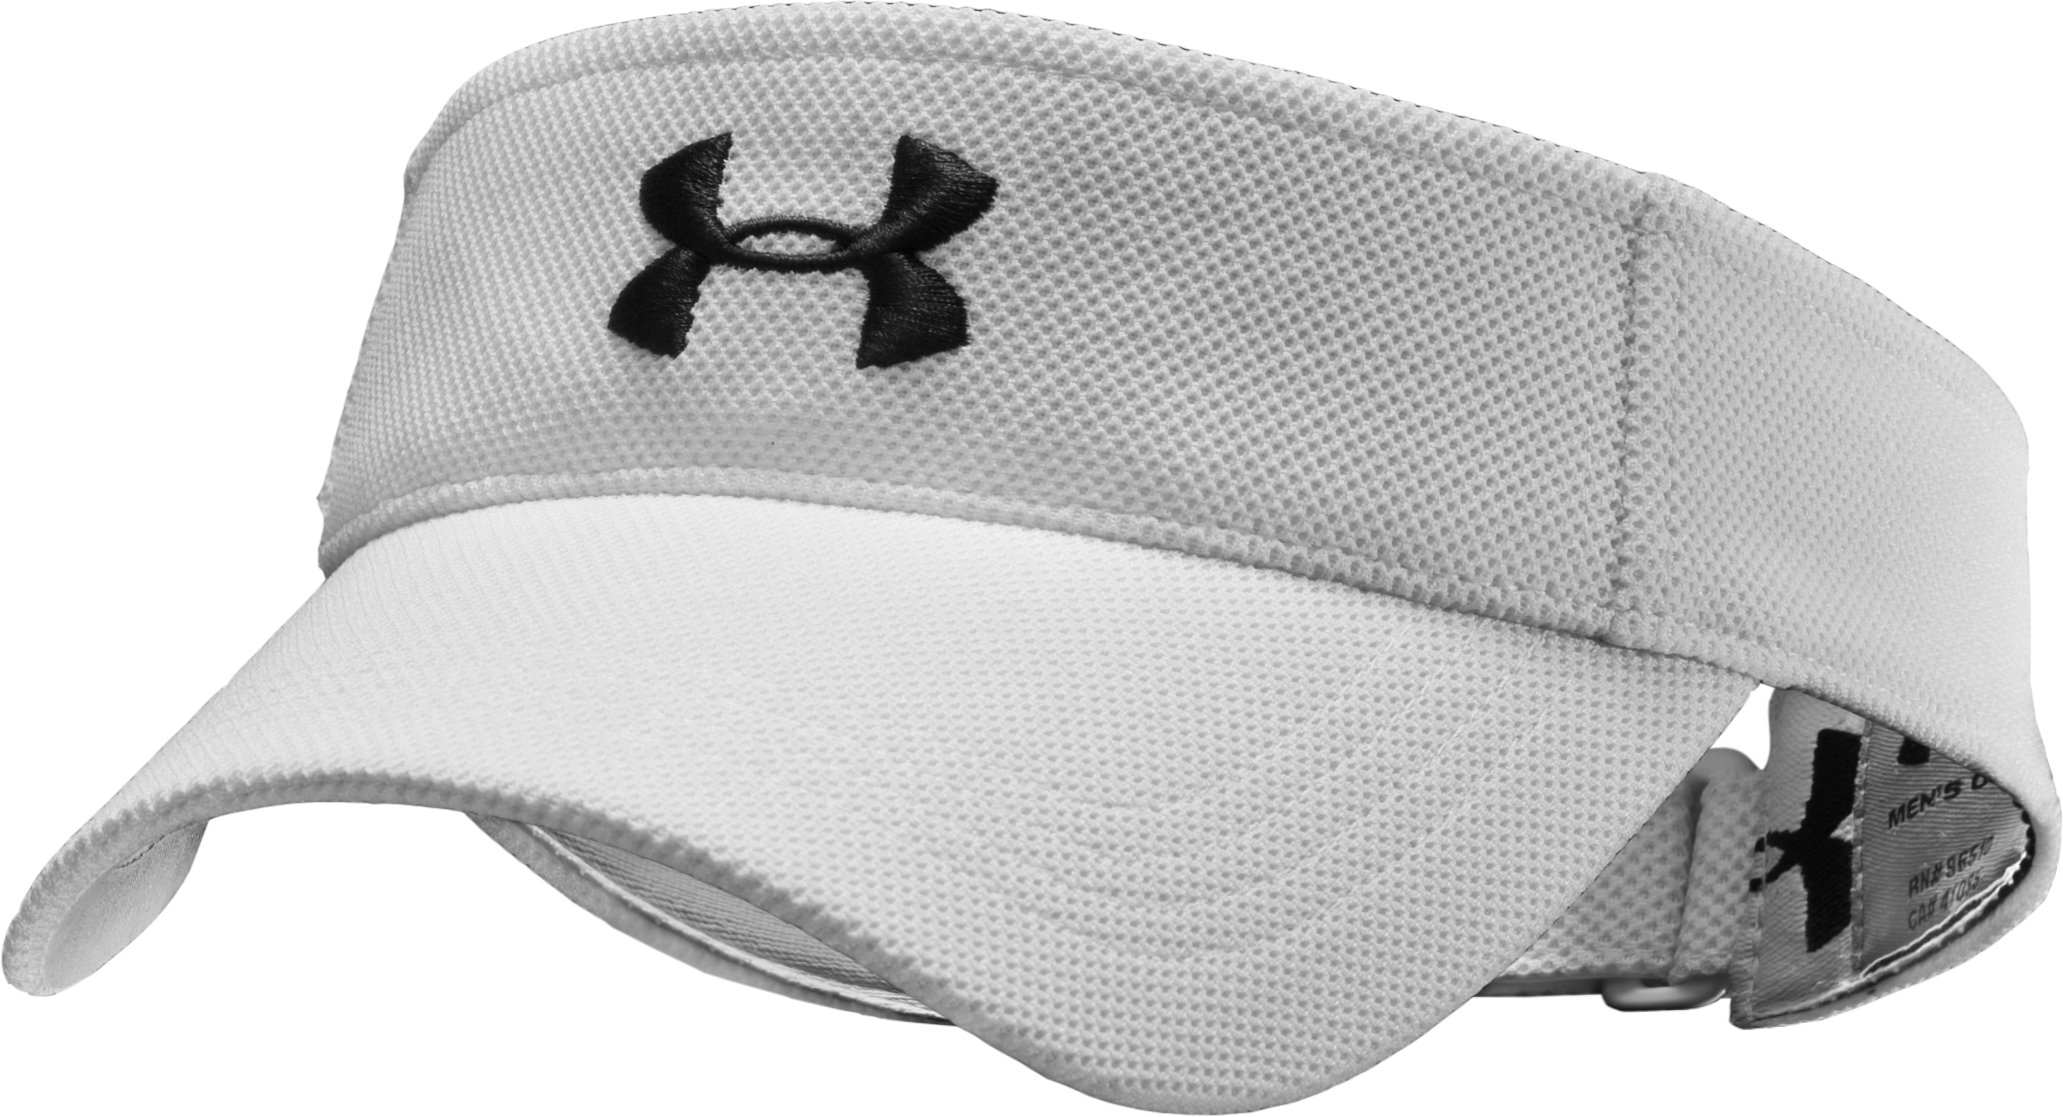 Boys' Audible Adjustable Visor, White